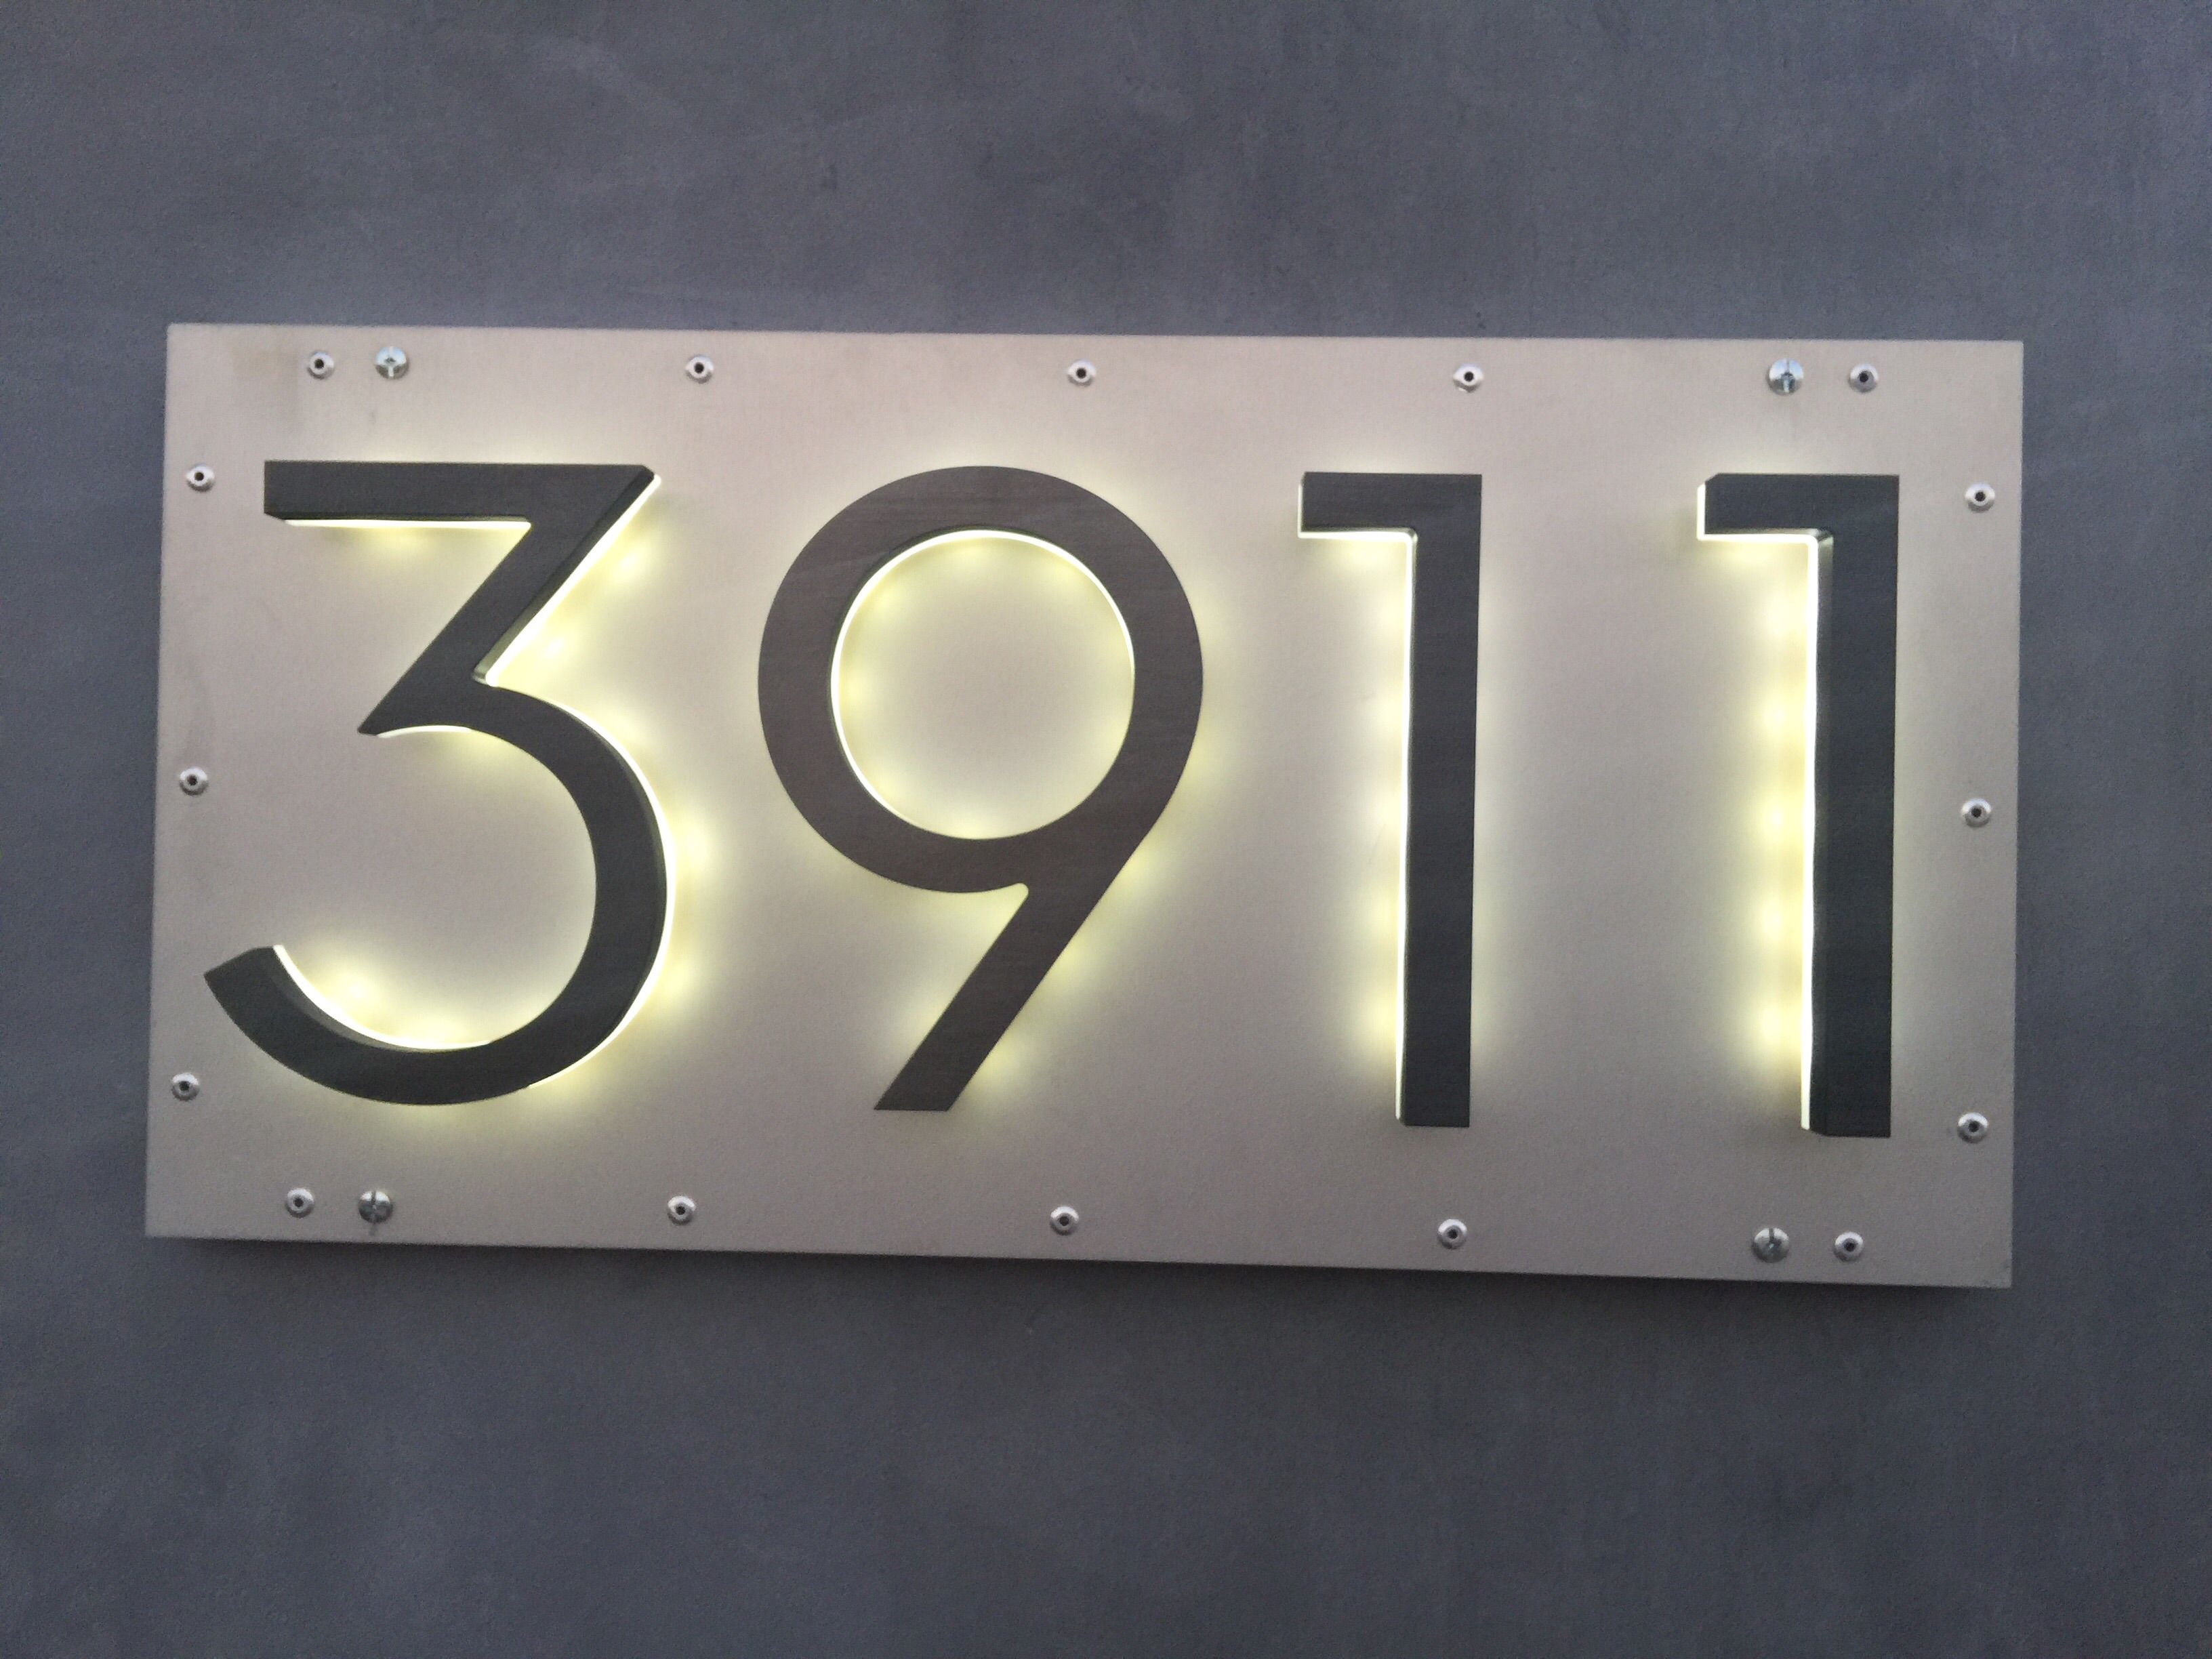 LED 8 modern bronze backlit address numbers Home decor